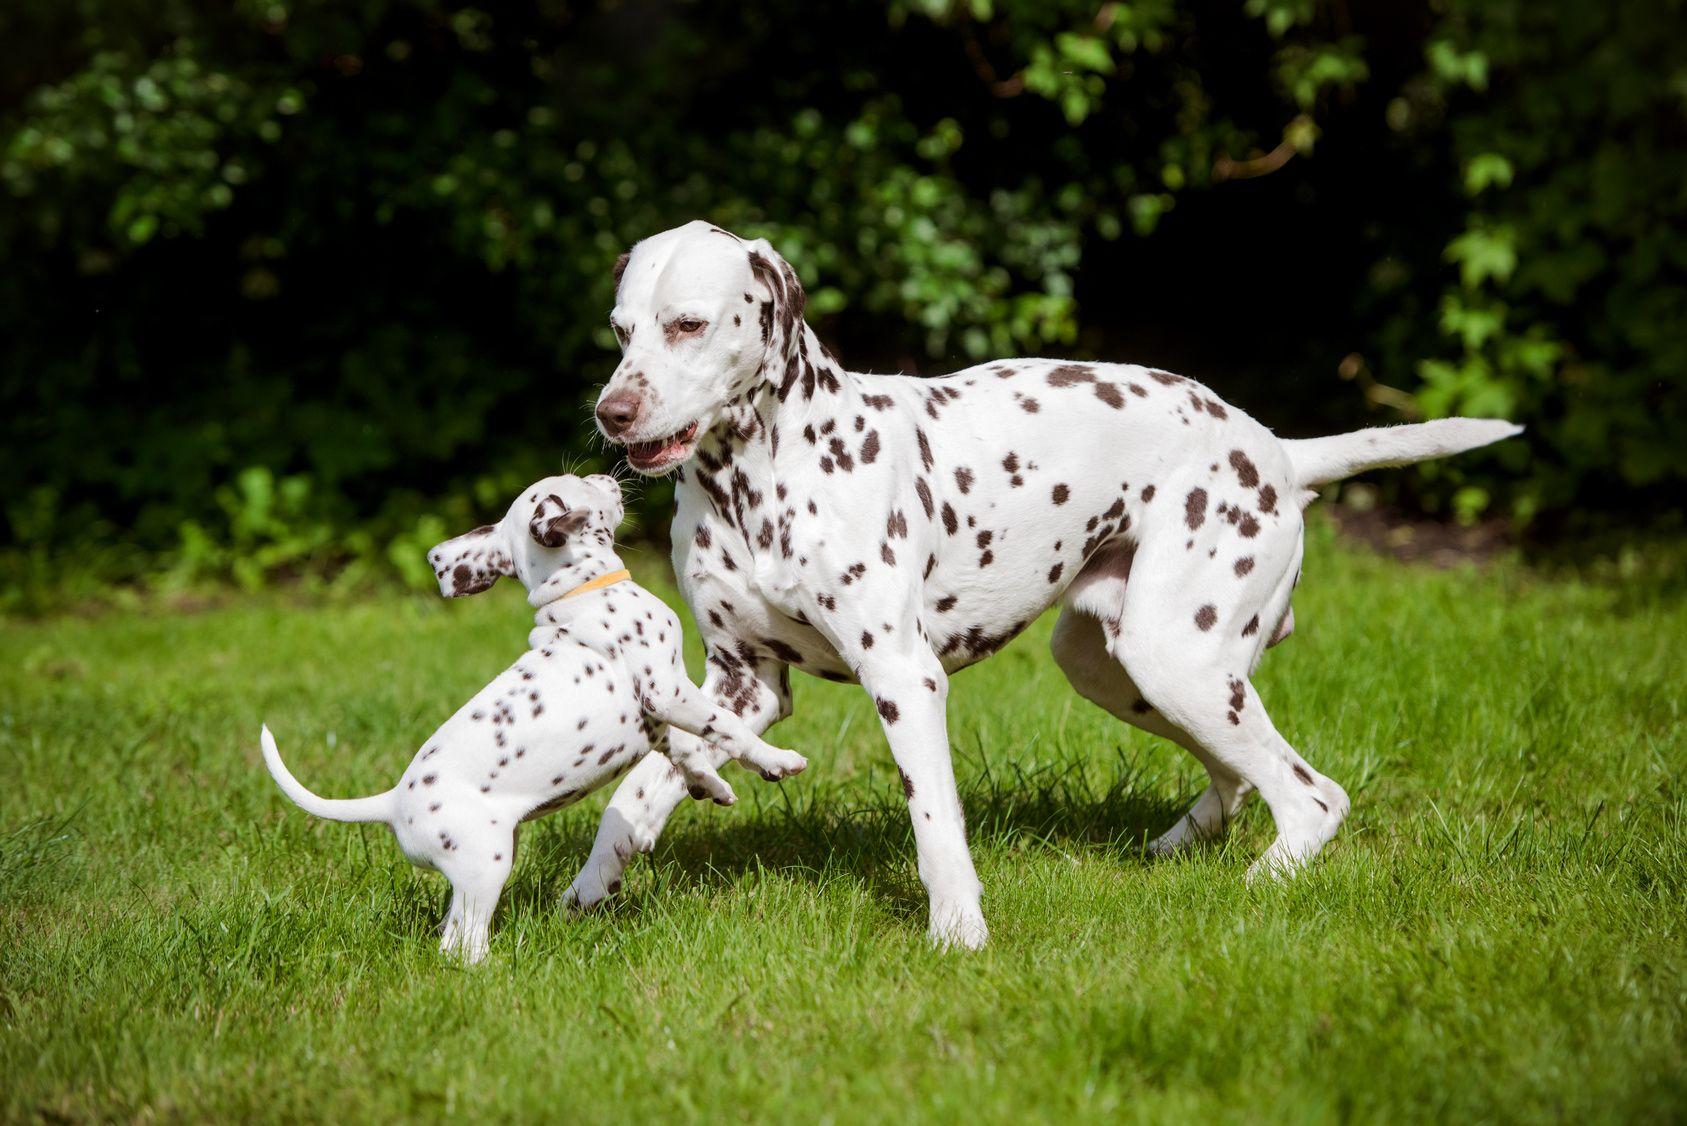 dalmatian dog playing with puppies